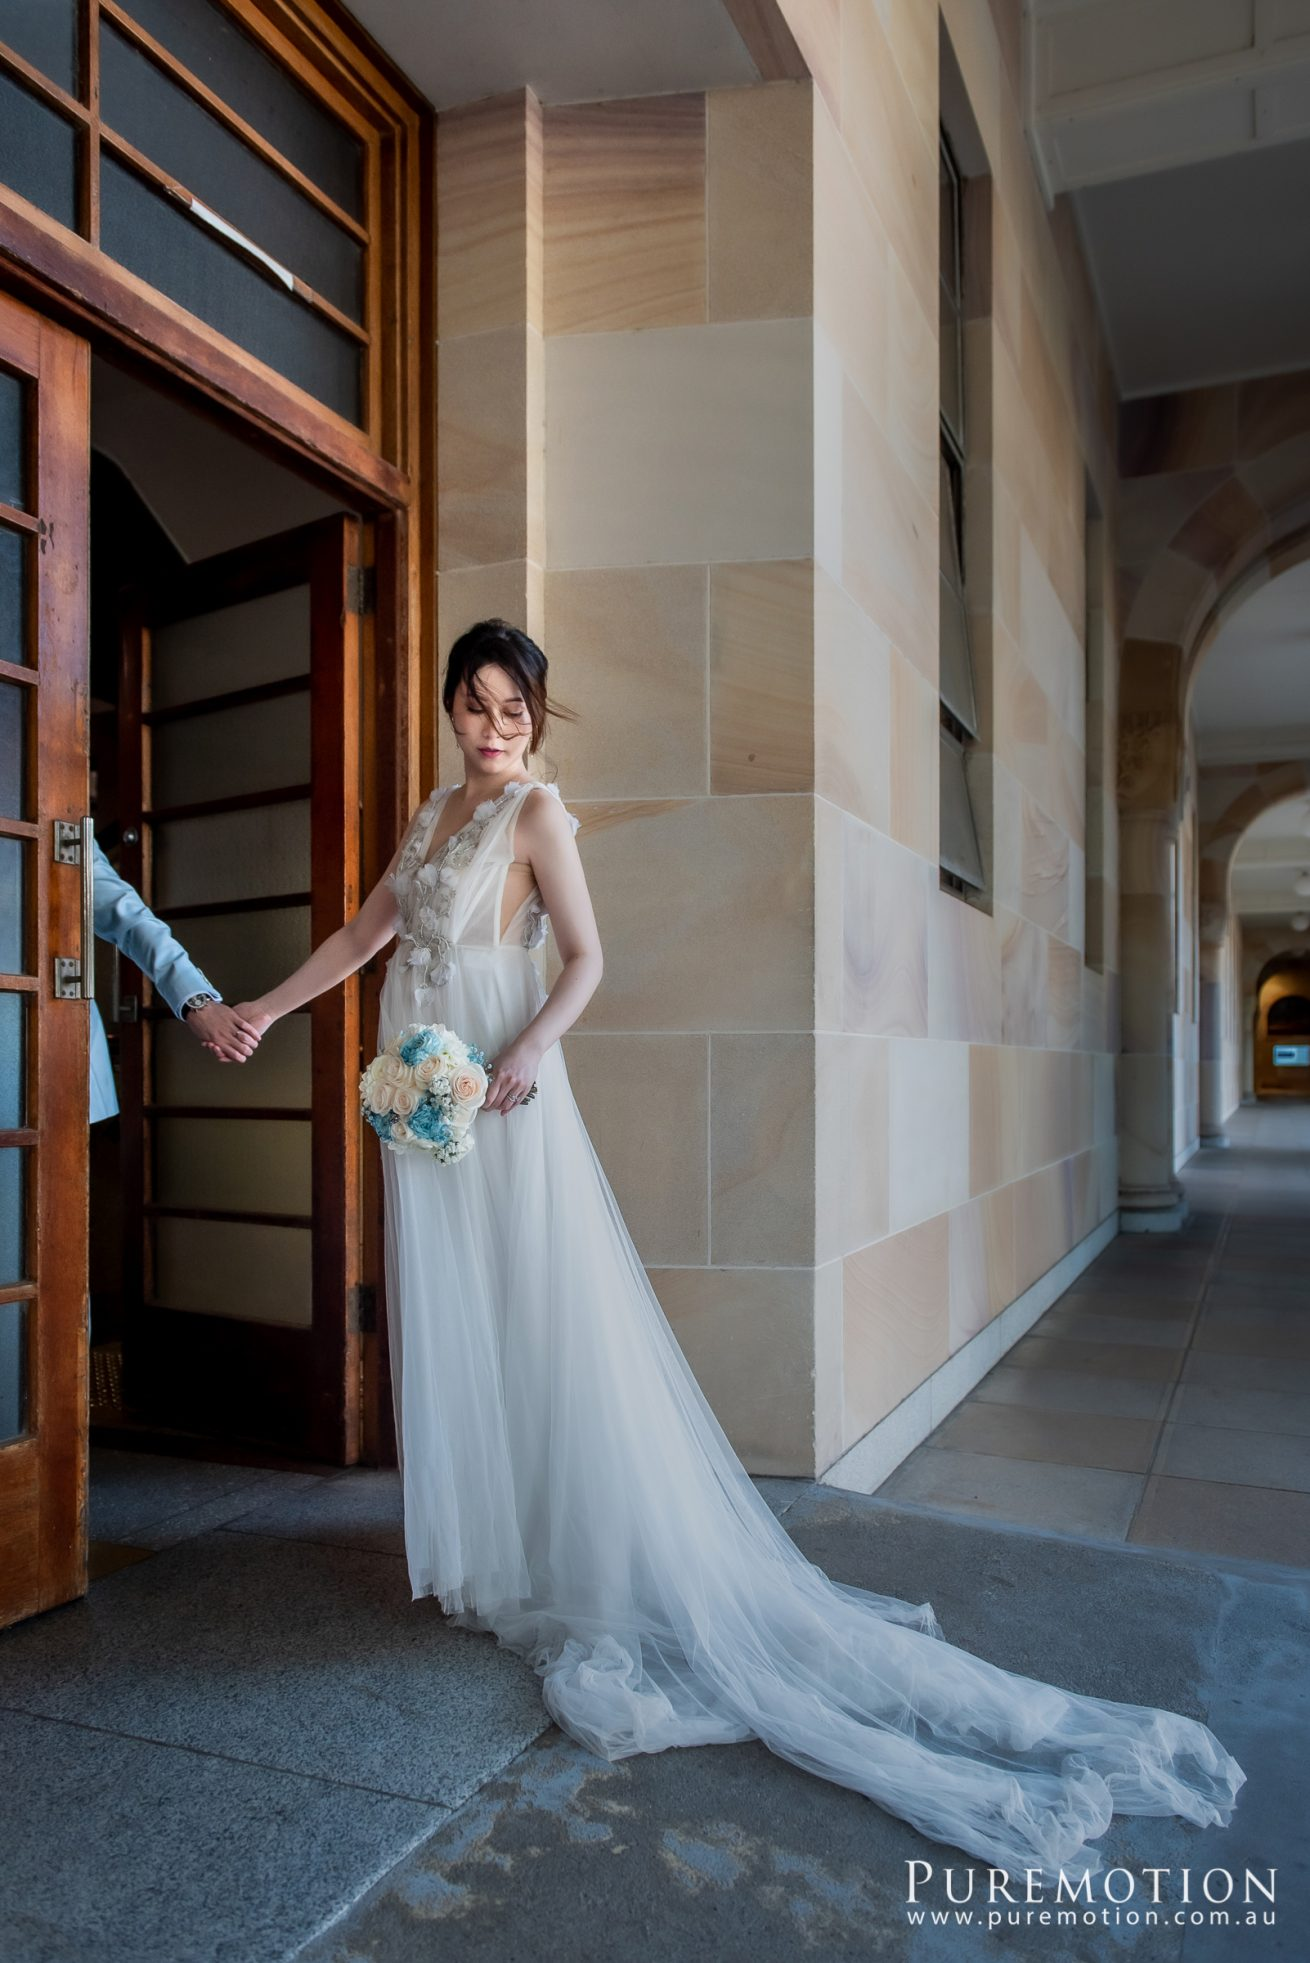 190928 Puremotion Wedding Photography Brisbane Alex Huang AnaDon-0050